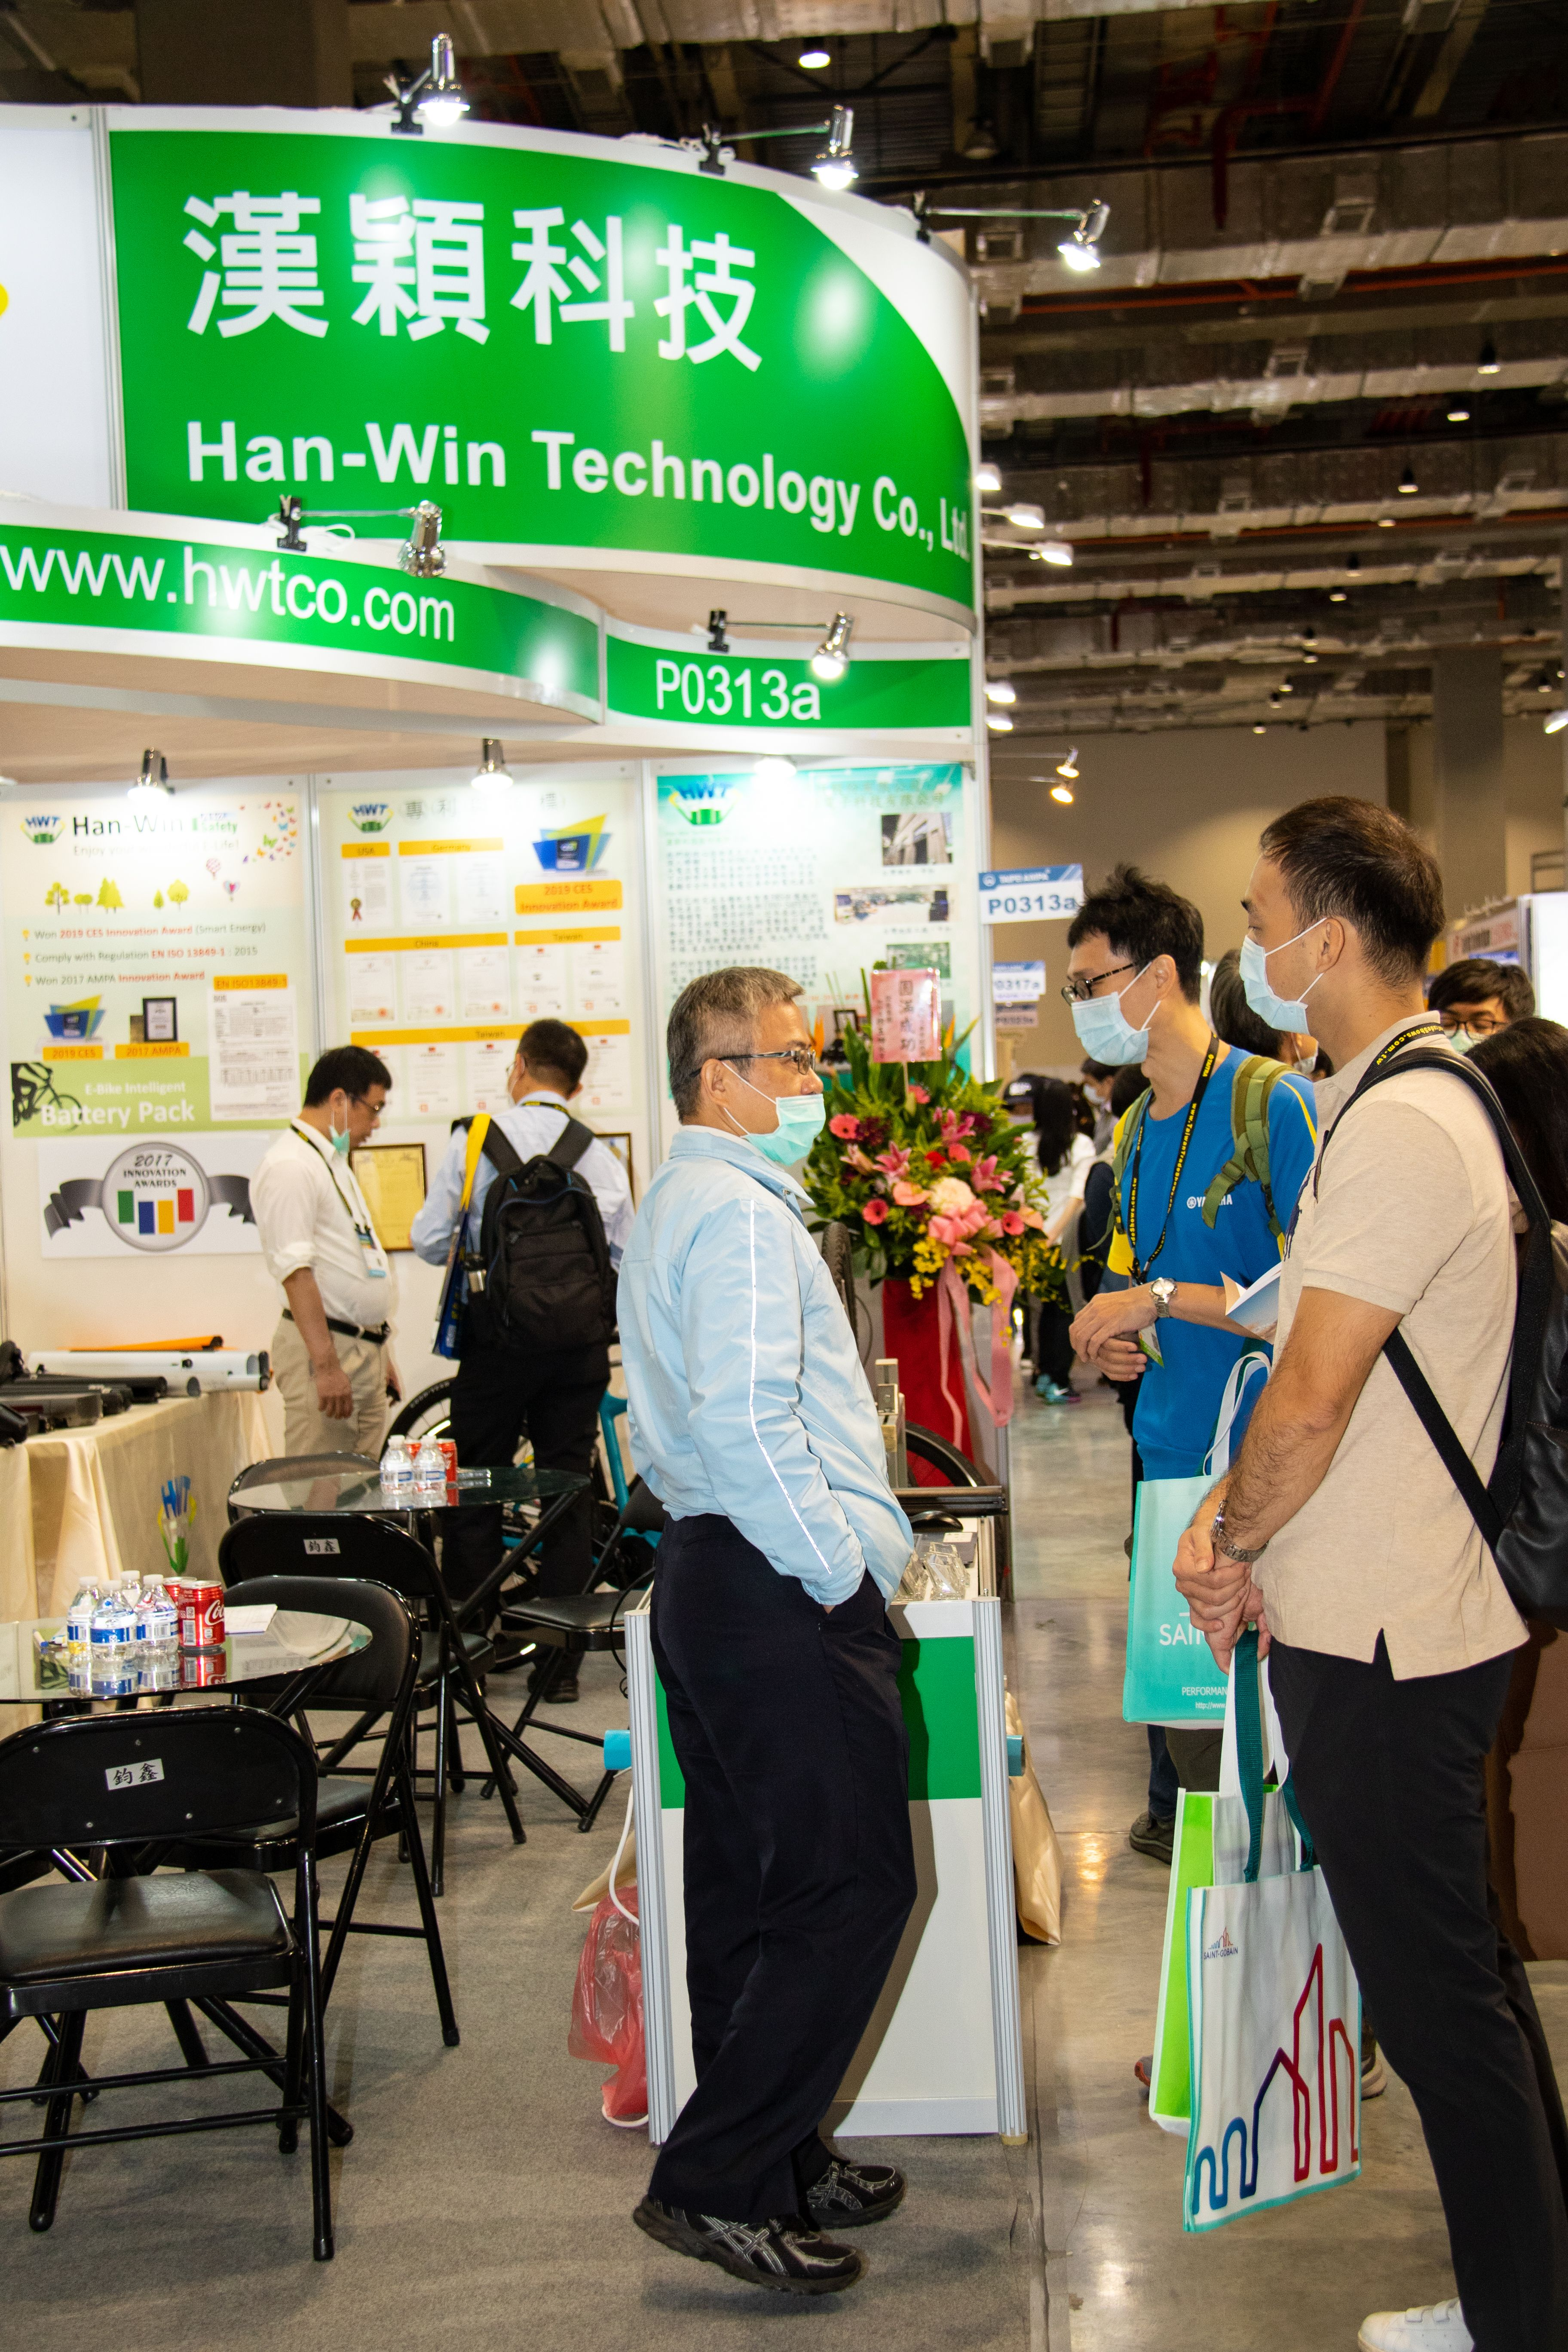 https://storage.googleapis.com/www.taiwantradeshow.com.tw/activity-photo/202010/T-15960333-name.jpg